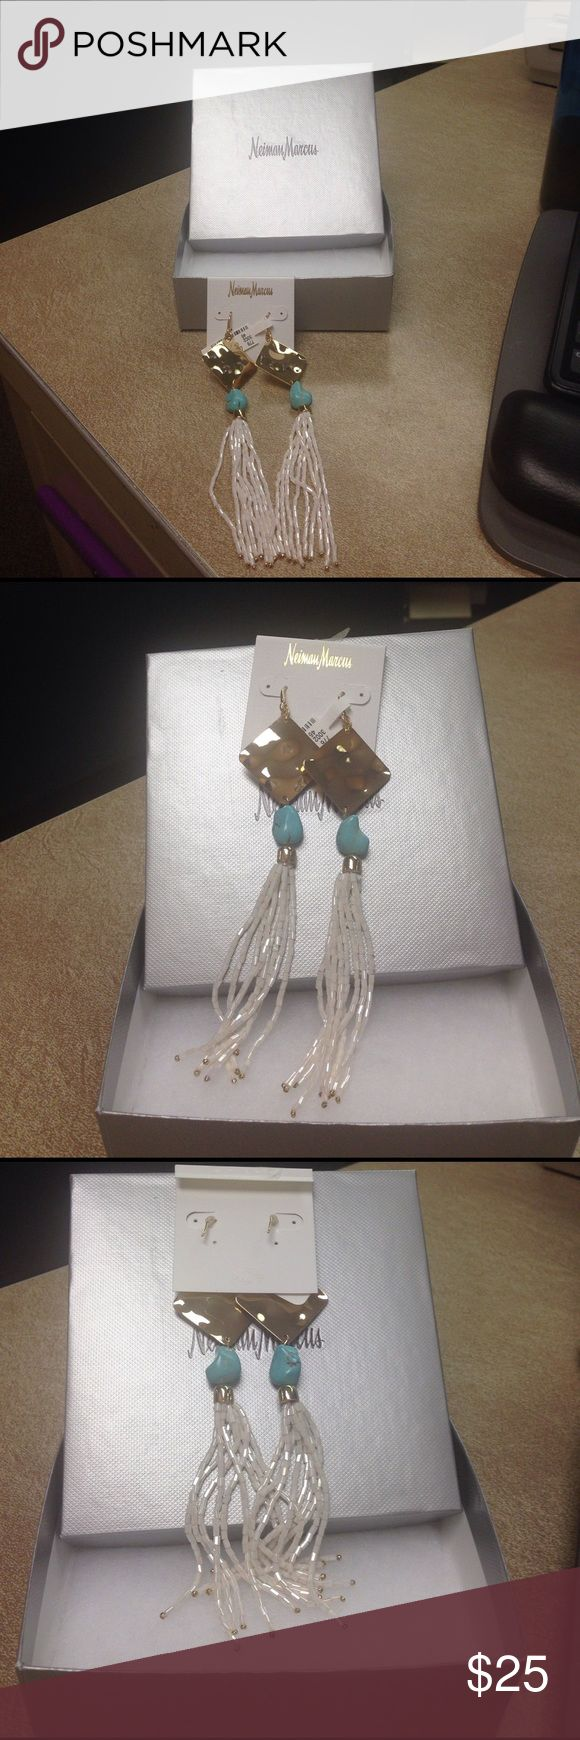 Panache earrings from Neiman Marcus Brand new Gold, White and Turquoise Earrings. Panache bought at Neiman Marcus. Panache Jewelry Earrings